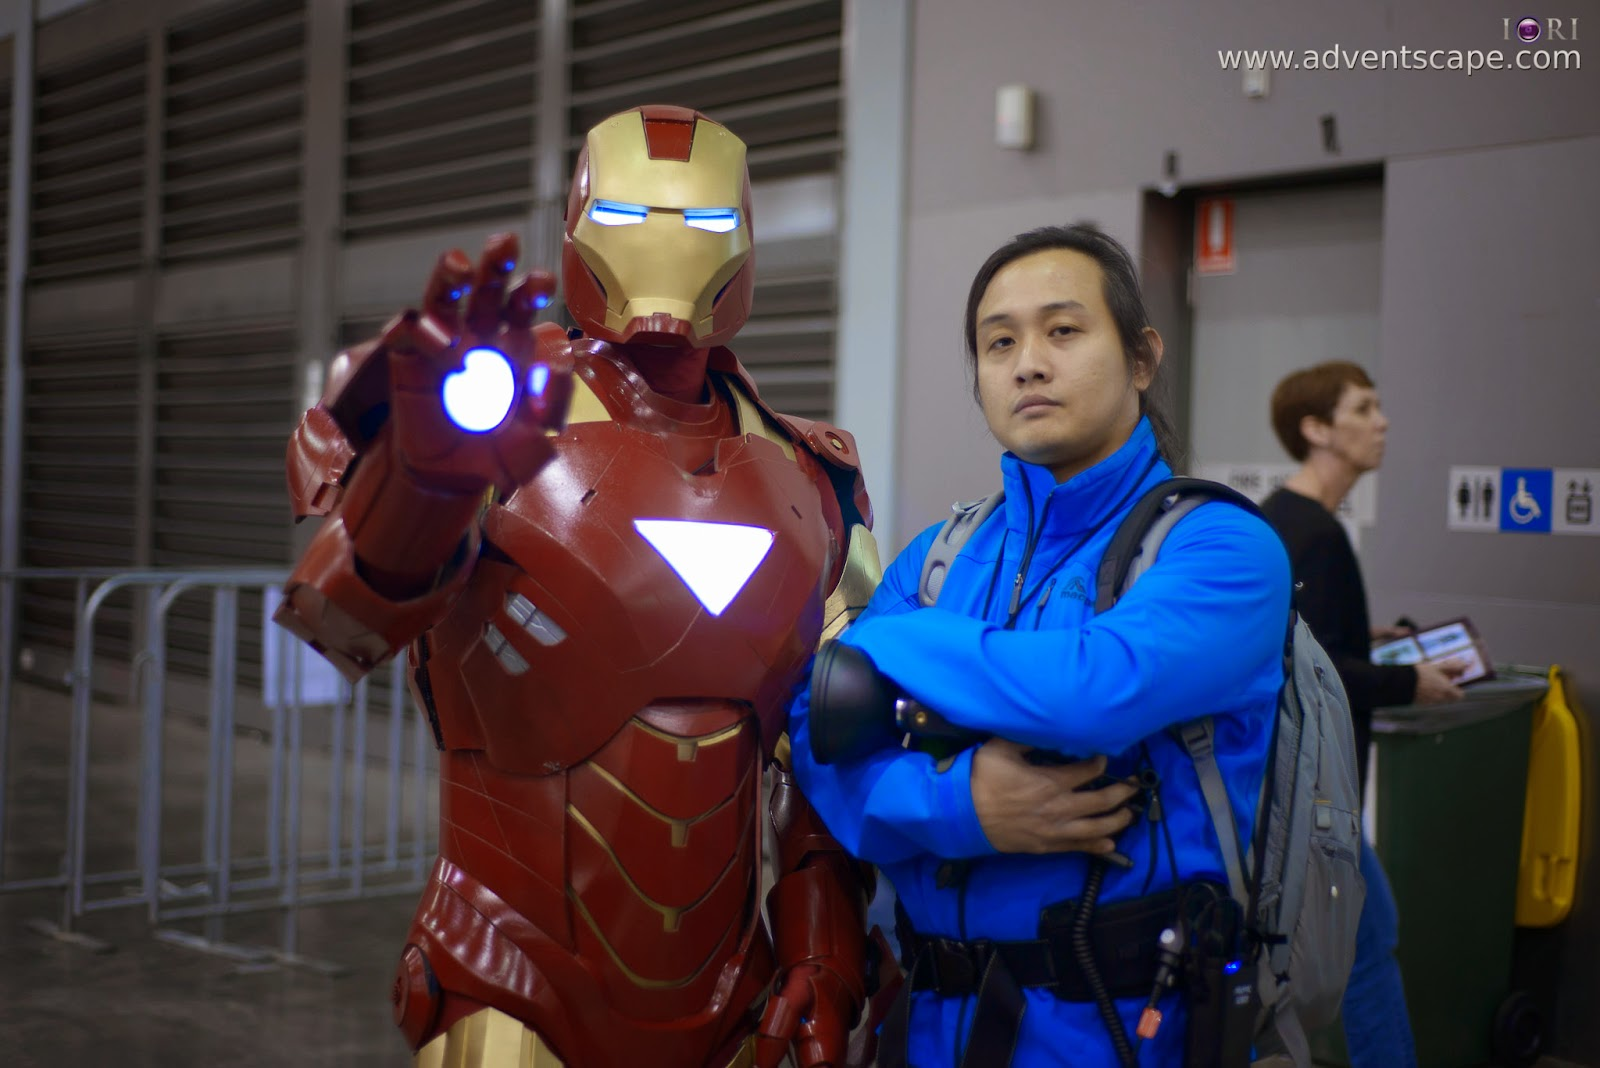 Marvel, Australia, Australian Landscape Photographer, Cosplay, Homebush, New South Wales, NSW, Philip Avellana, Sydney Olympic Park, Iron Man, Tony Stark, Stark Industries, suit